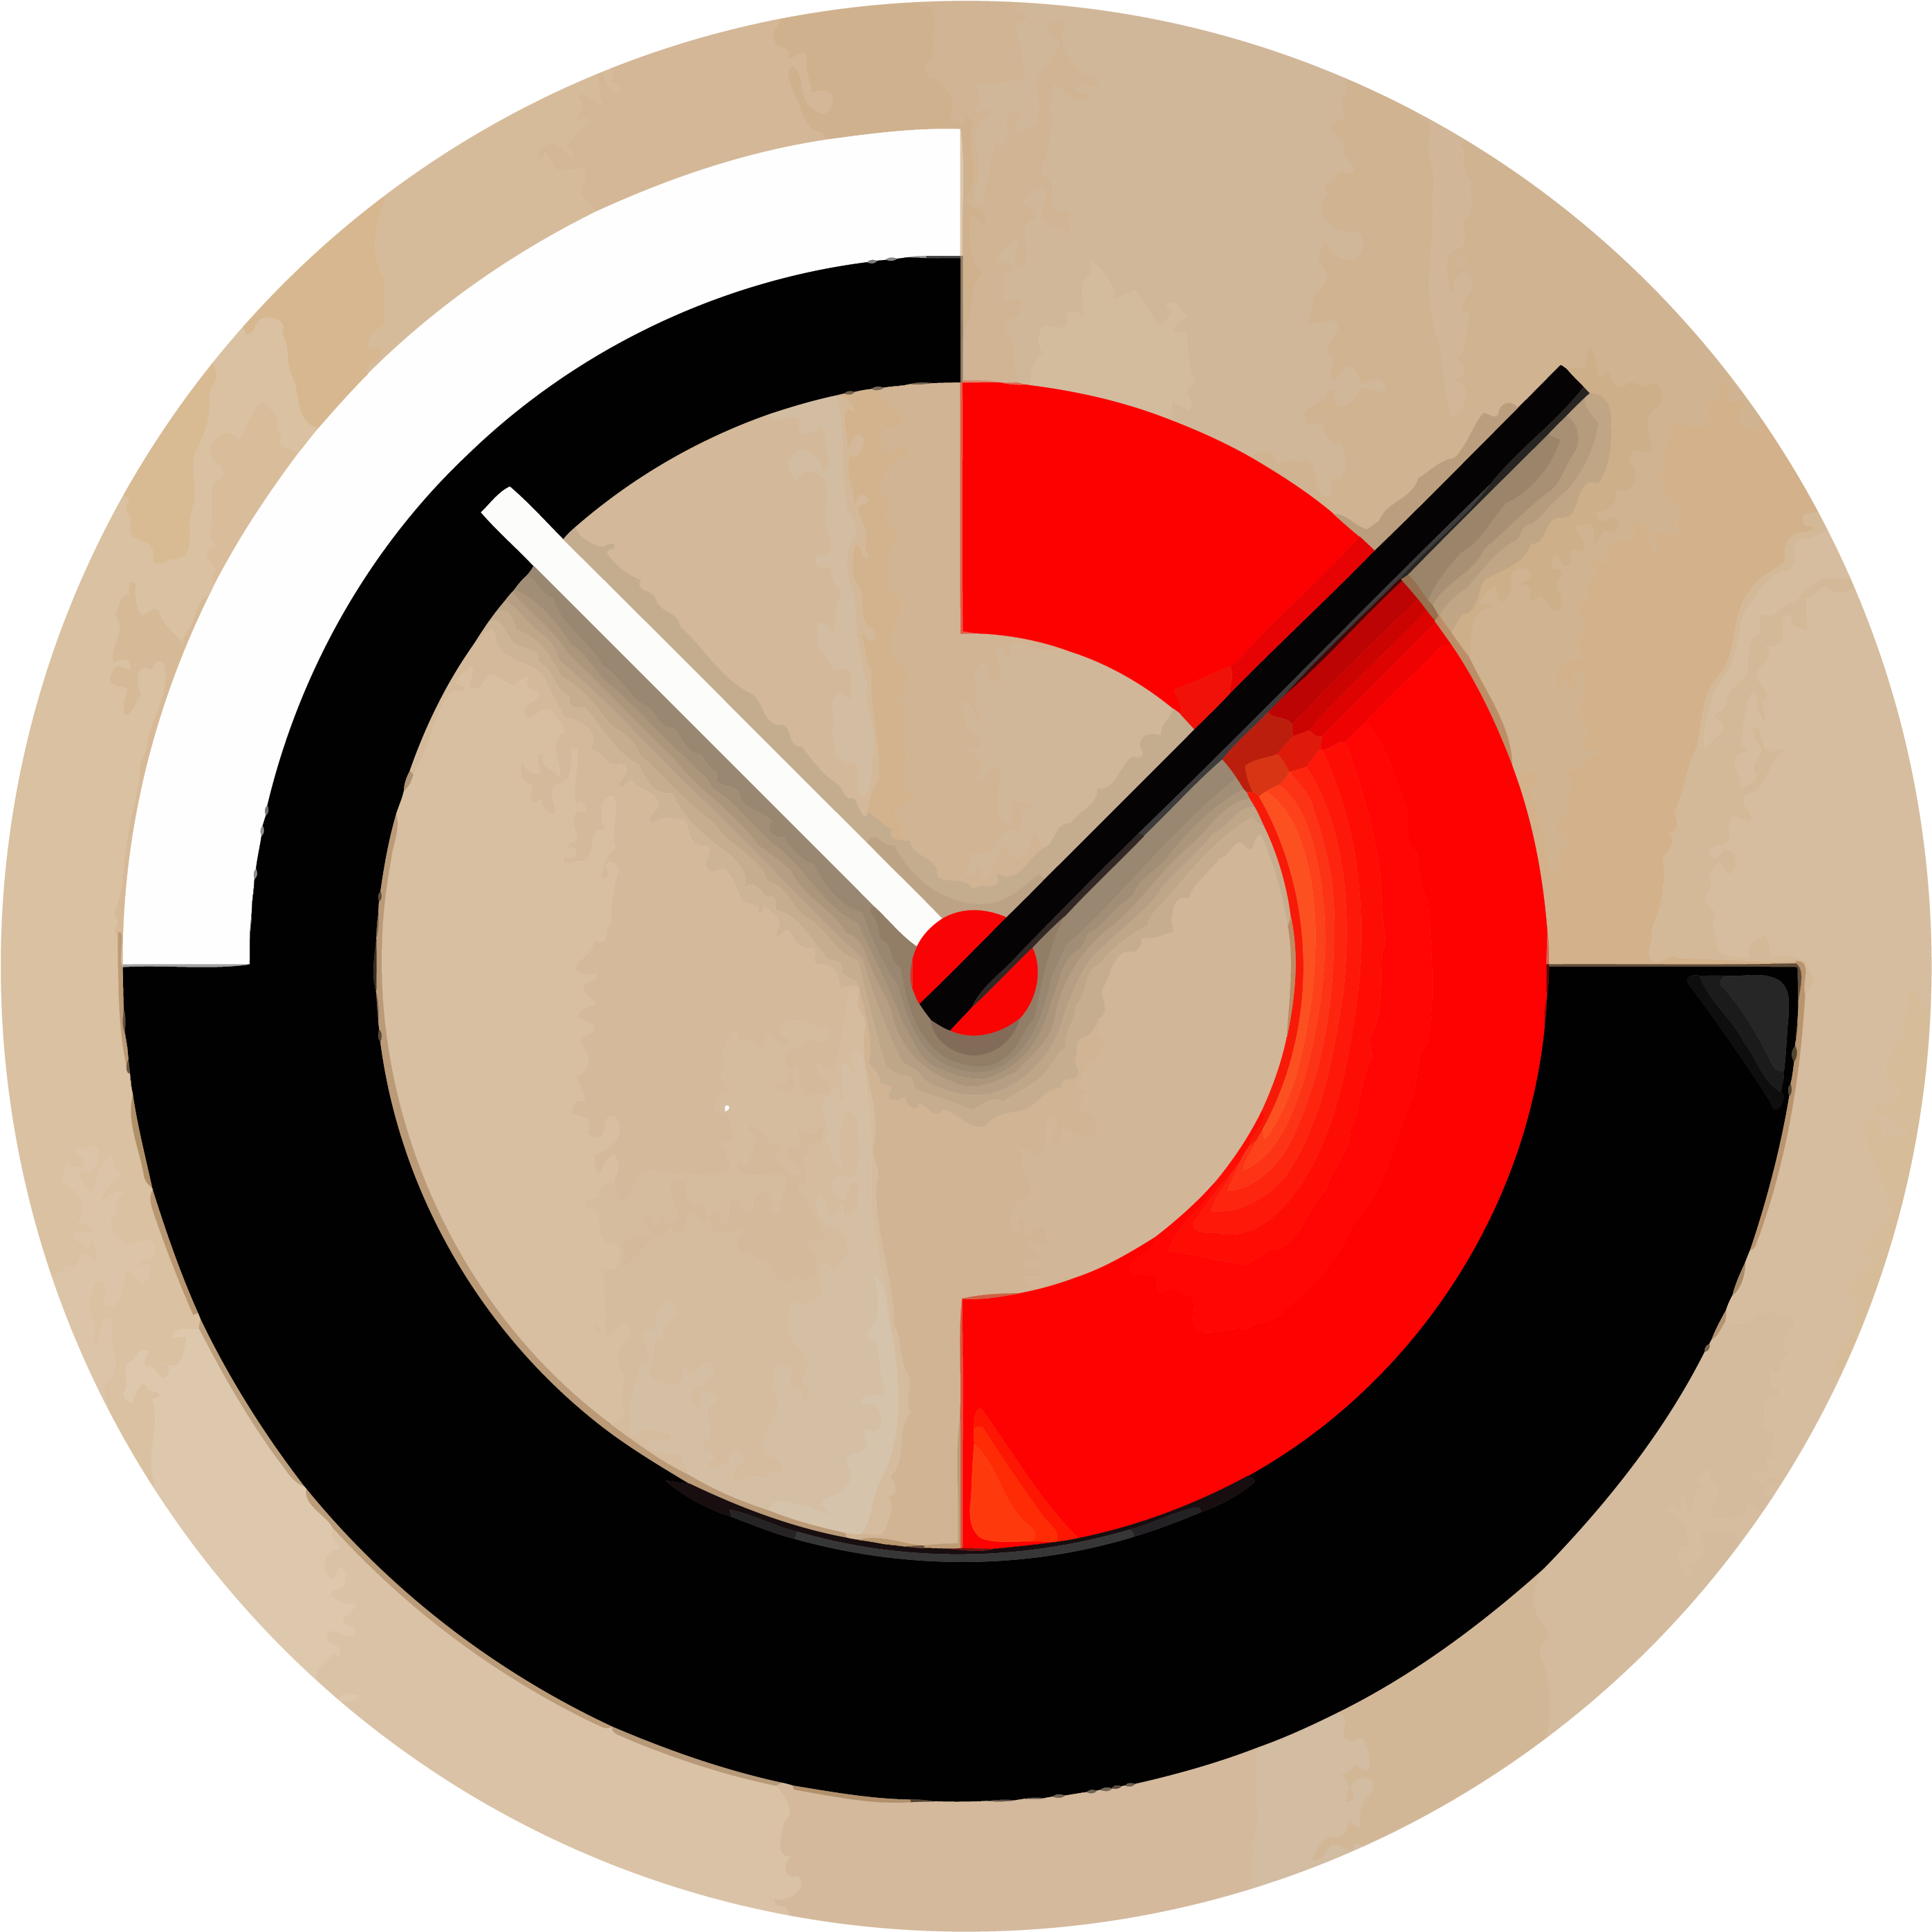 Transparent clock clipart png - Bbq Clock Clipart Png - Wall Clock